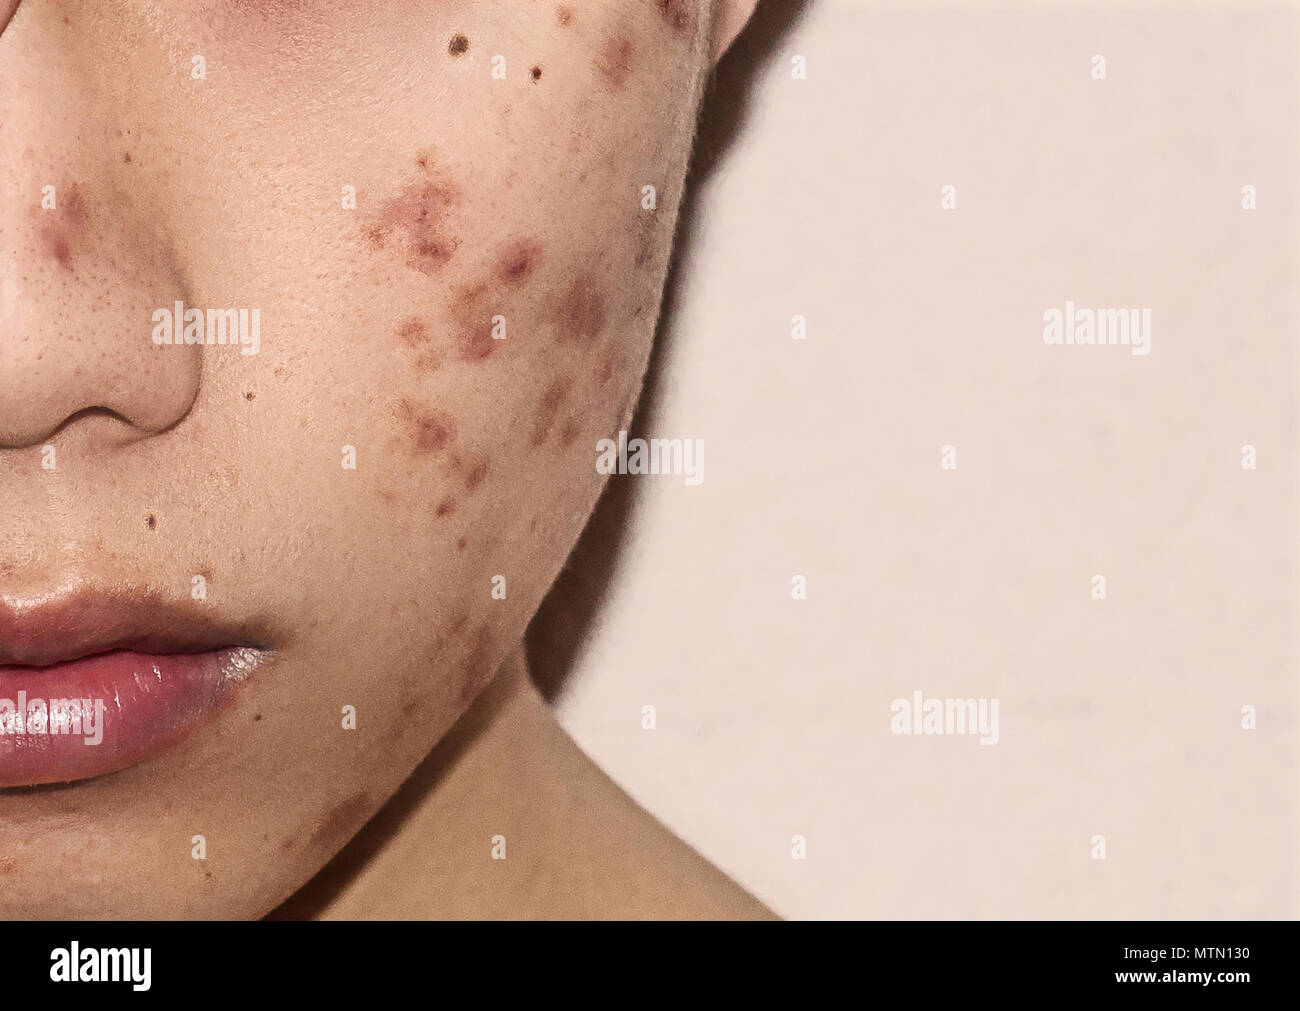 how to clear up acne scars on face